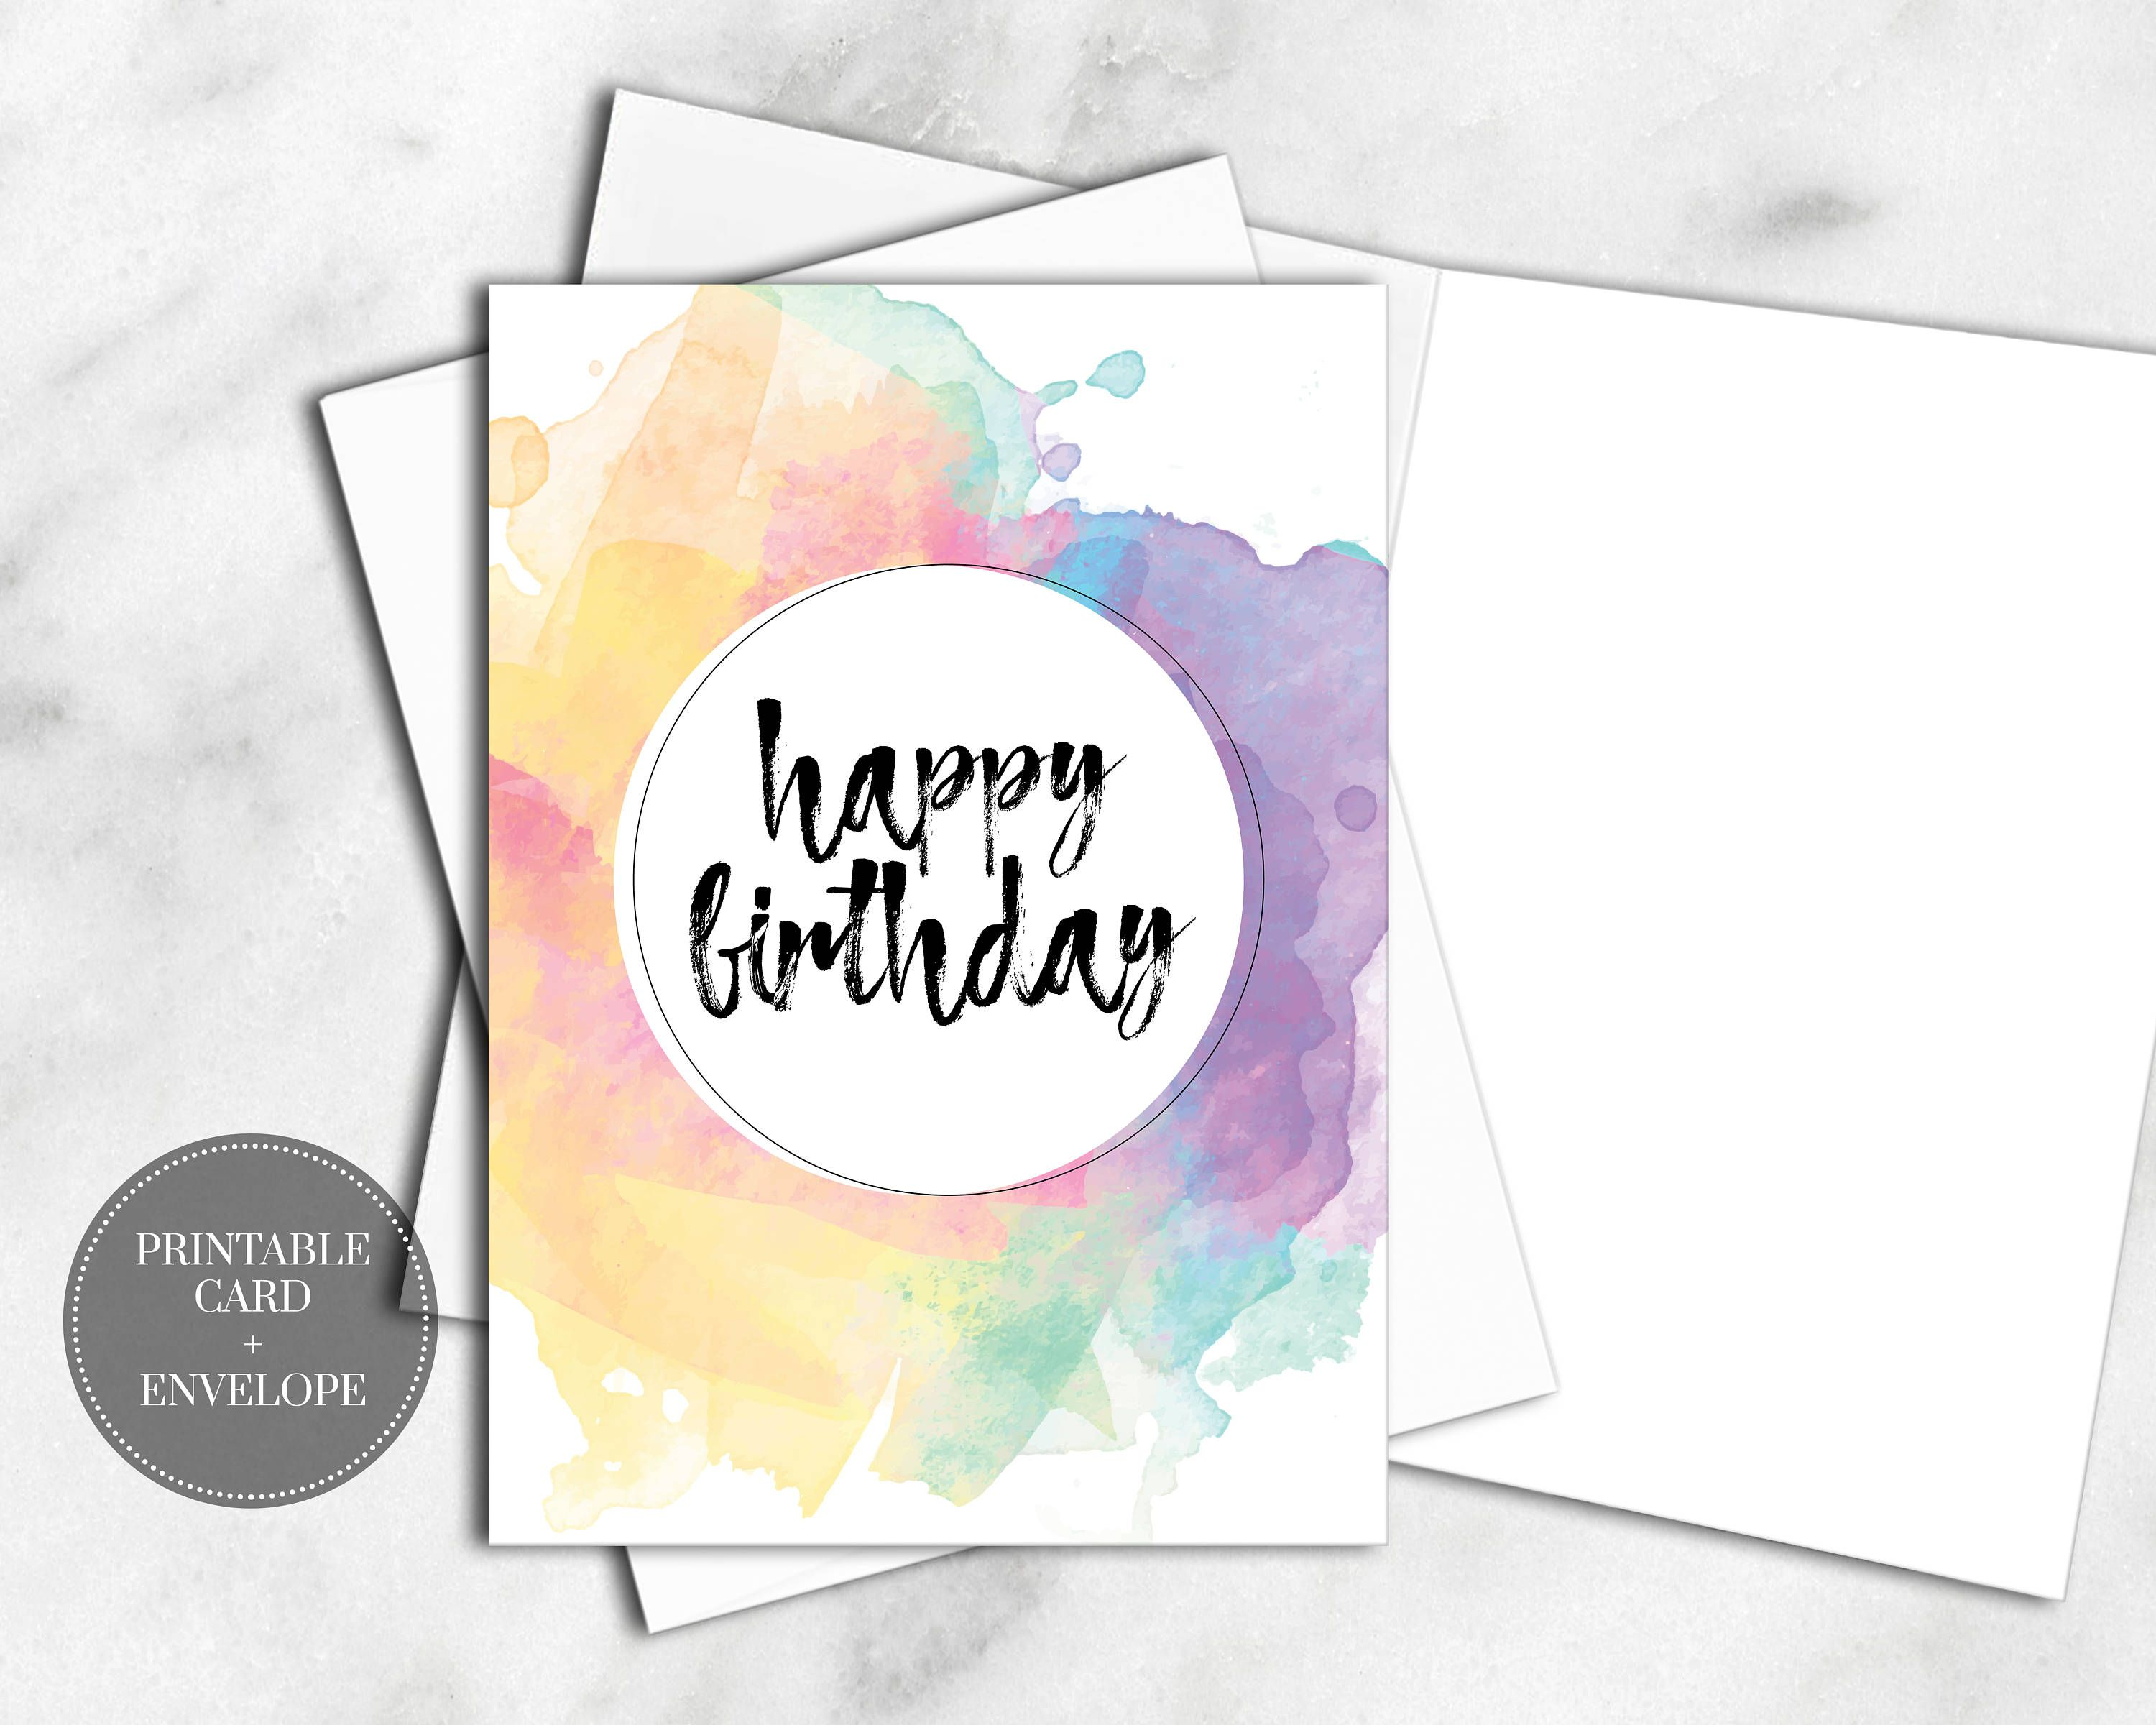 image regarding Printable Birthday Cards for Sister called Pin by means of Meghan Burton upon Printable Greeting Playing cards Birthday